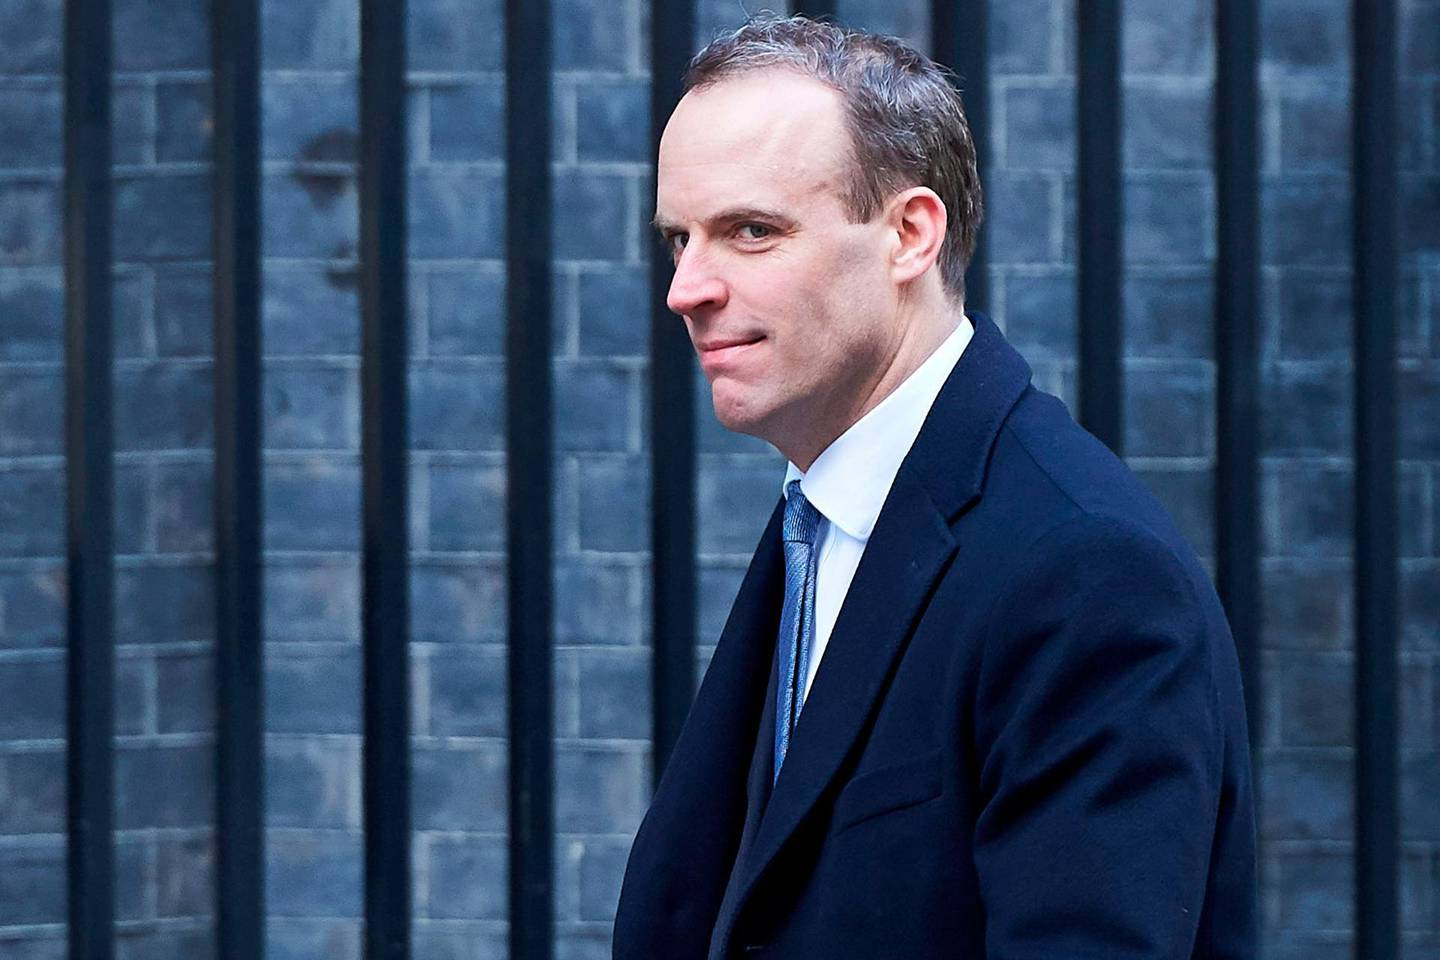 (FILES) In this file photo taken on February 06, 2018 Dominic Raab, then Minister of State for Housing and Planning, leaves 10 Downing street after the weekly cabinet meeting on February 6, 2018 in London. Dominic Raab was named Britain's new Brexit minister on July 9, 2018 after the resignation of David Davis. / AFP / NIKLAS HALLE'N